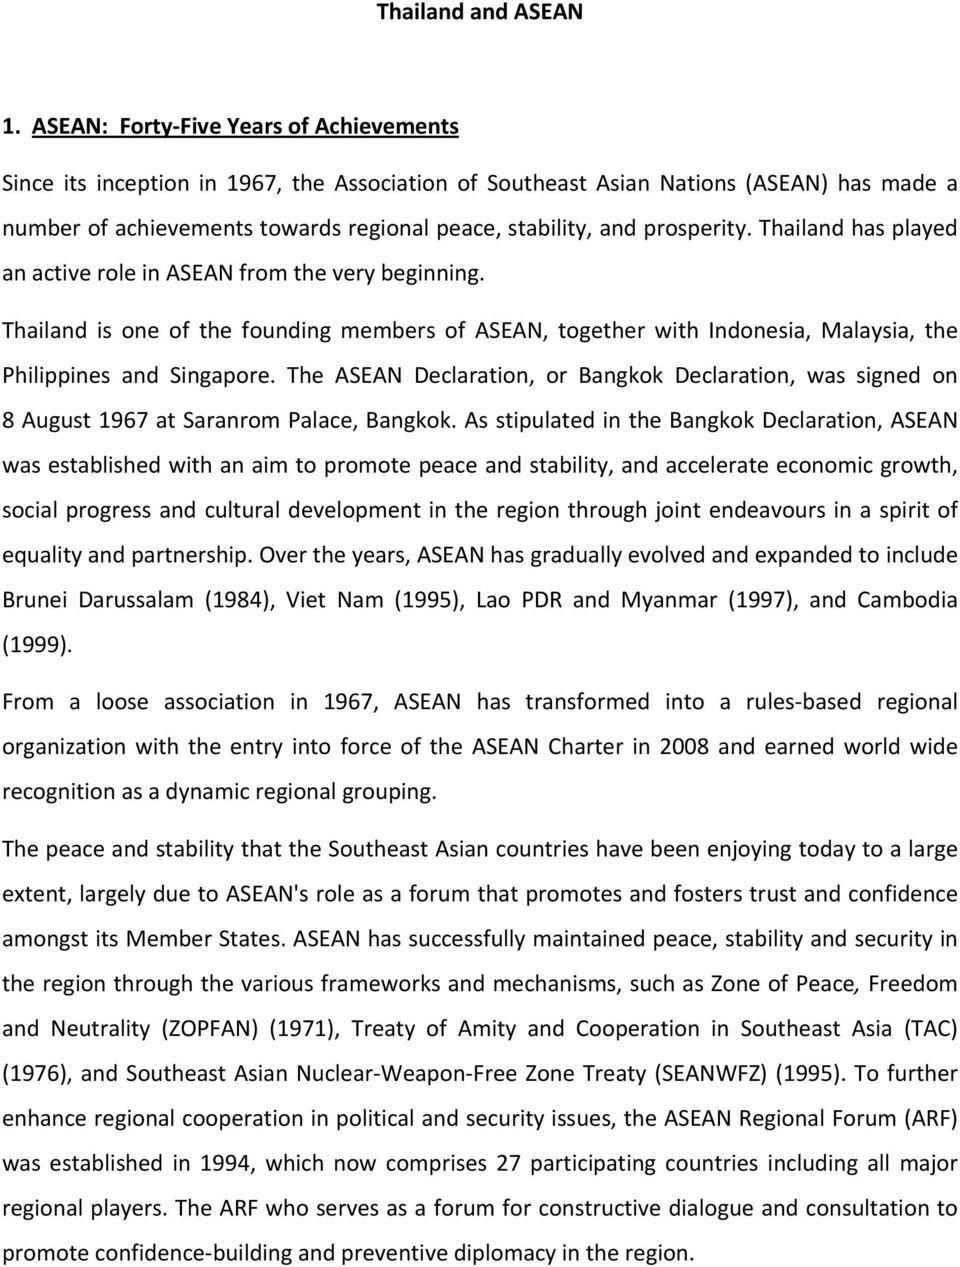 prosperity. Thailand has played an active role in ASEAN from the very beginning. Thailand is one of the founding members of ASEAN, together with Indonesia, Malaysia, the Philippines and Singapore.